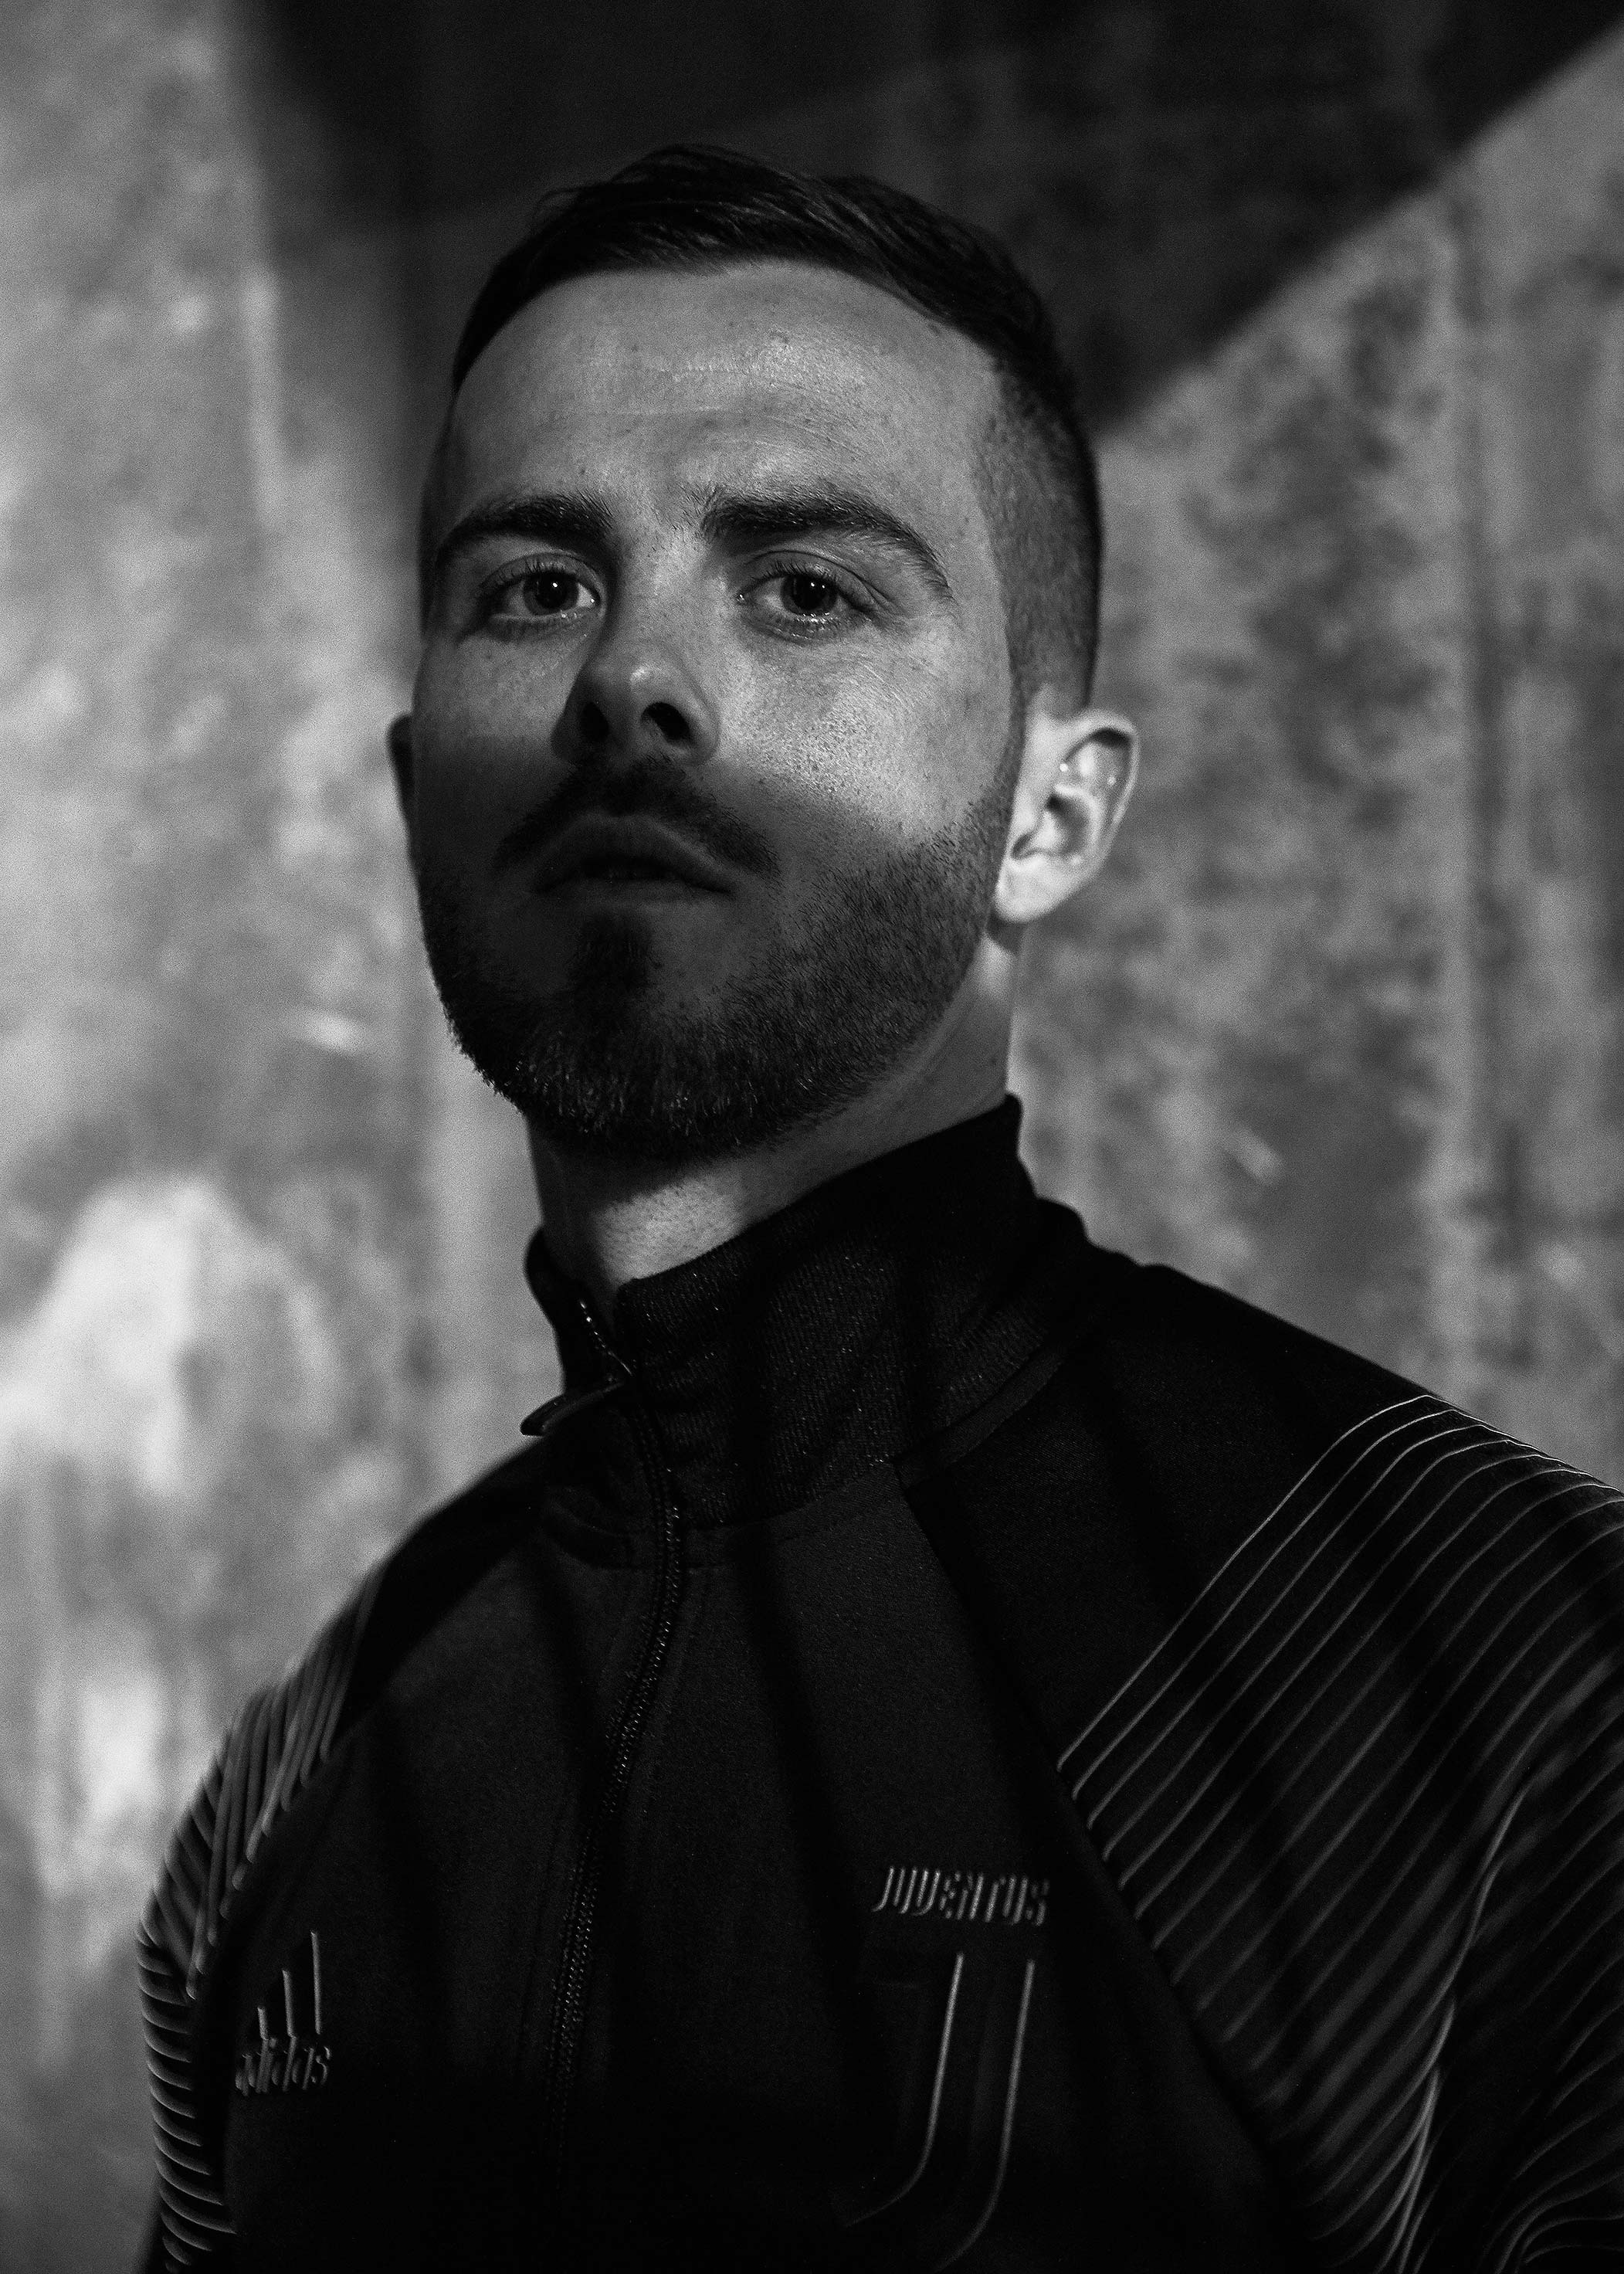 FW18_AClubs_2D_Juventus_SoccerBible_FW18_AClubs_2D_Juventus_SoccerBible_Pjanic_253.jpg